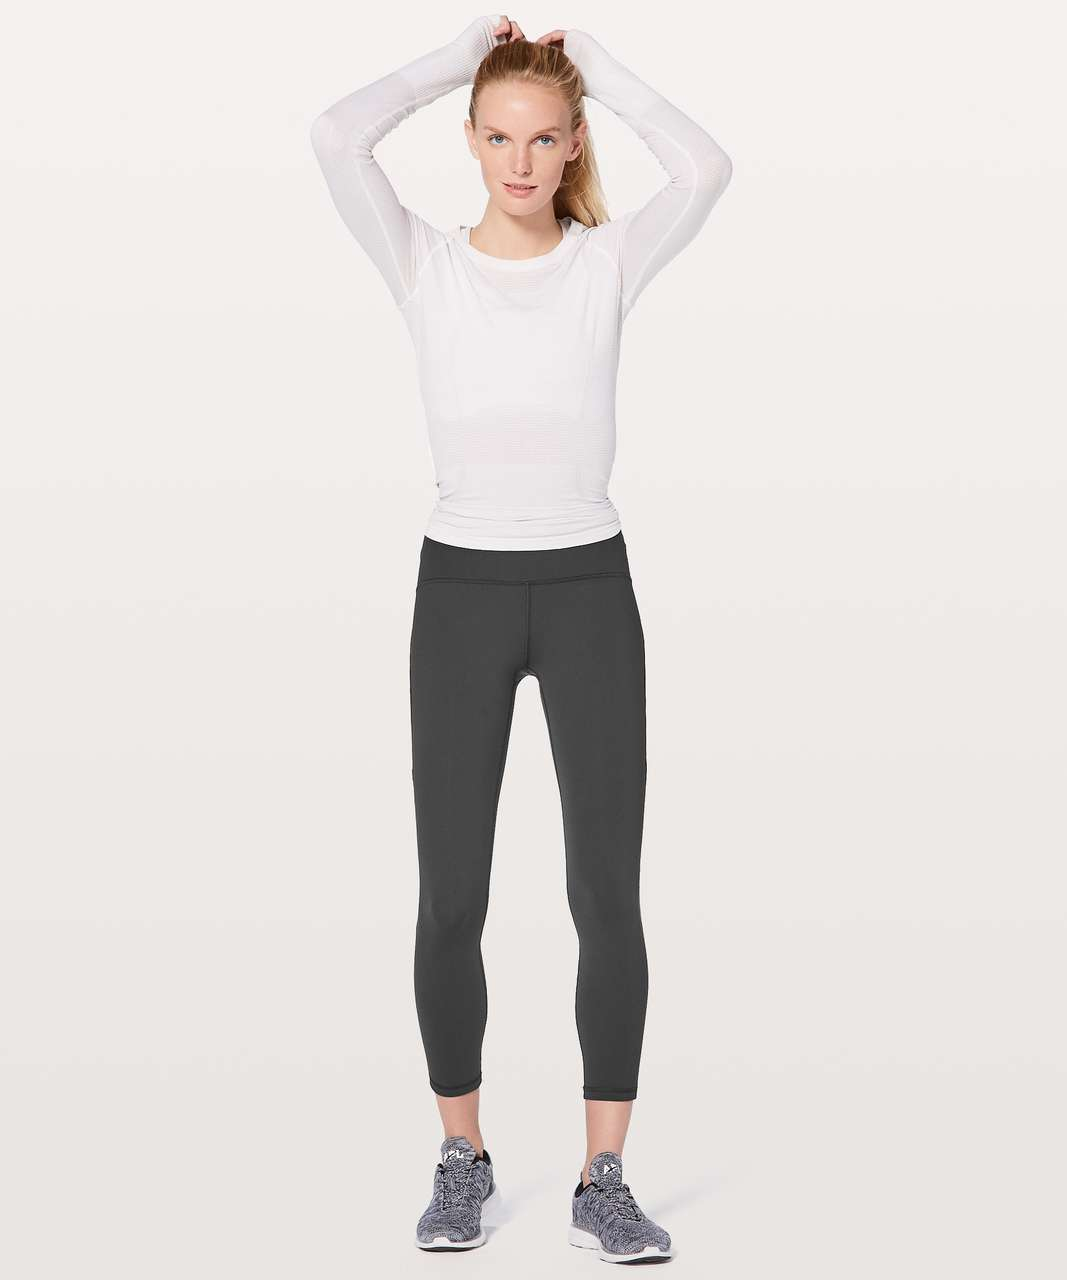 "Lululemon Train Times 7/8 Pant *25"" - Deep Coal"